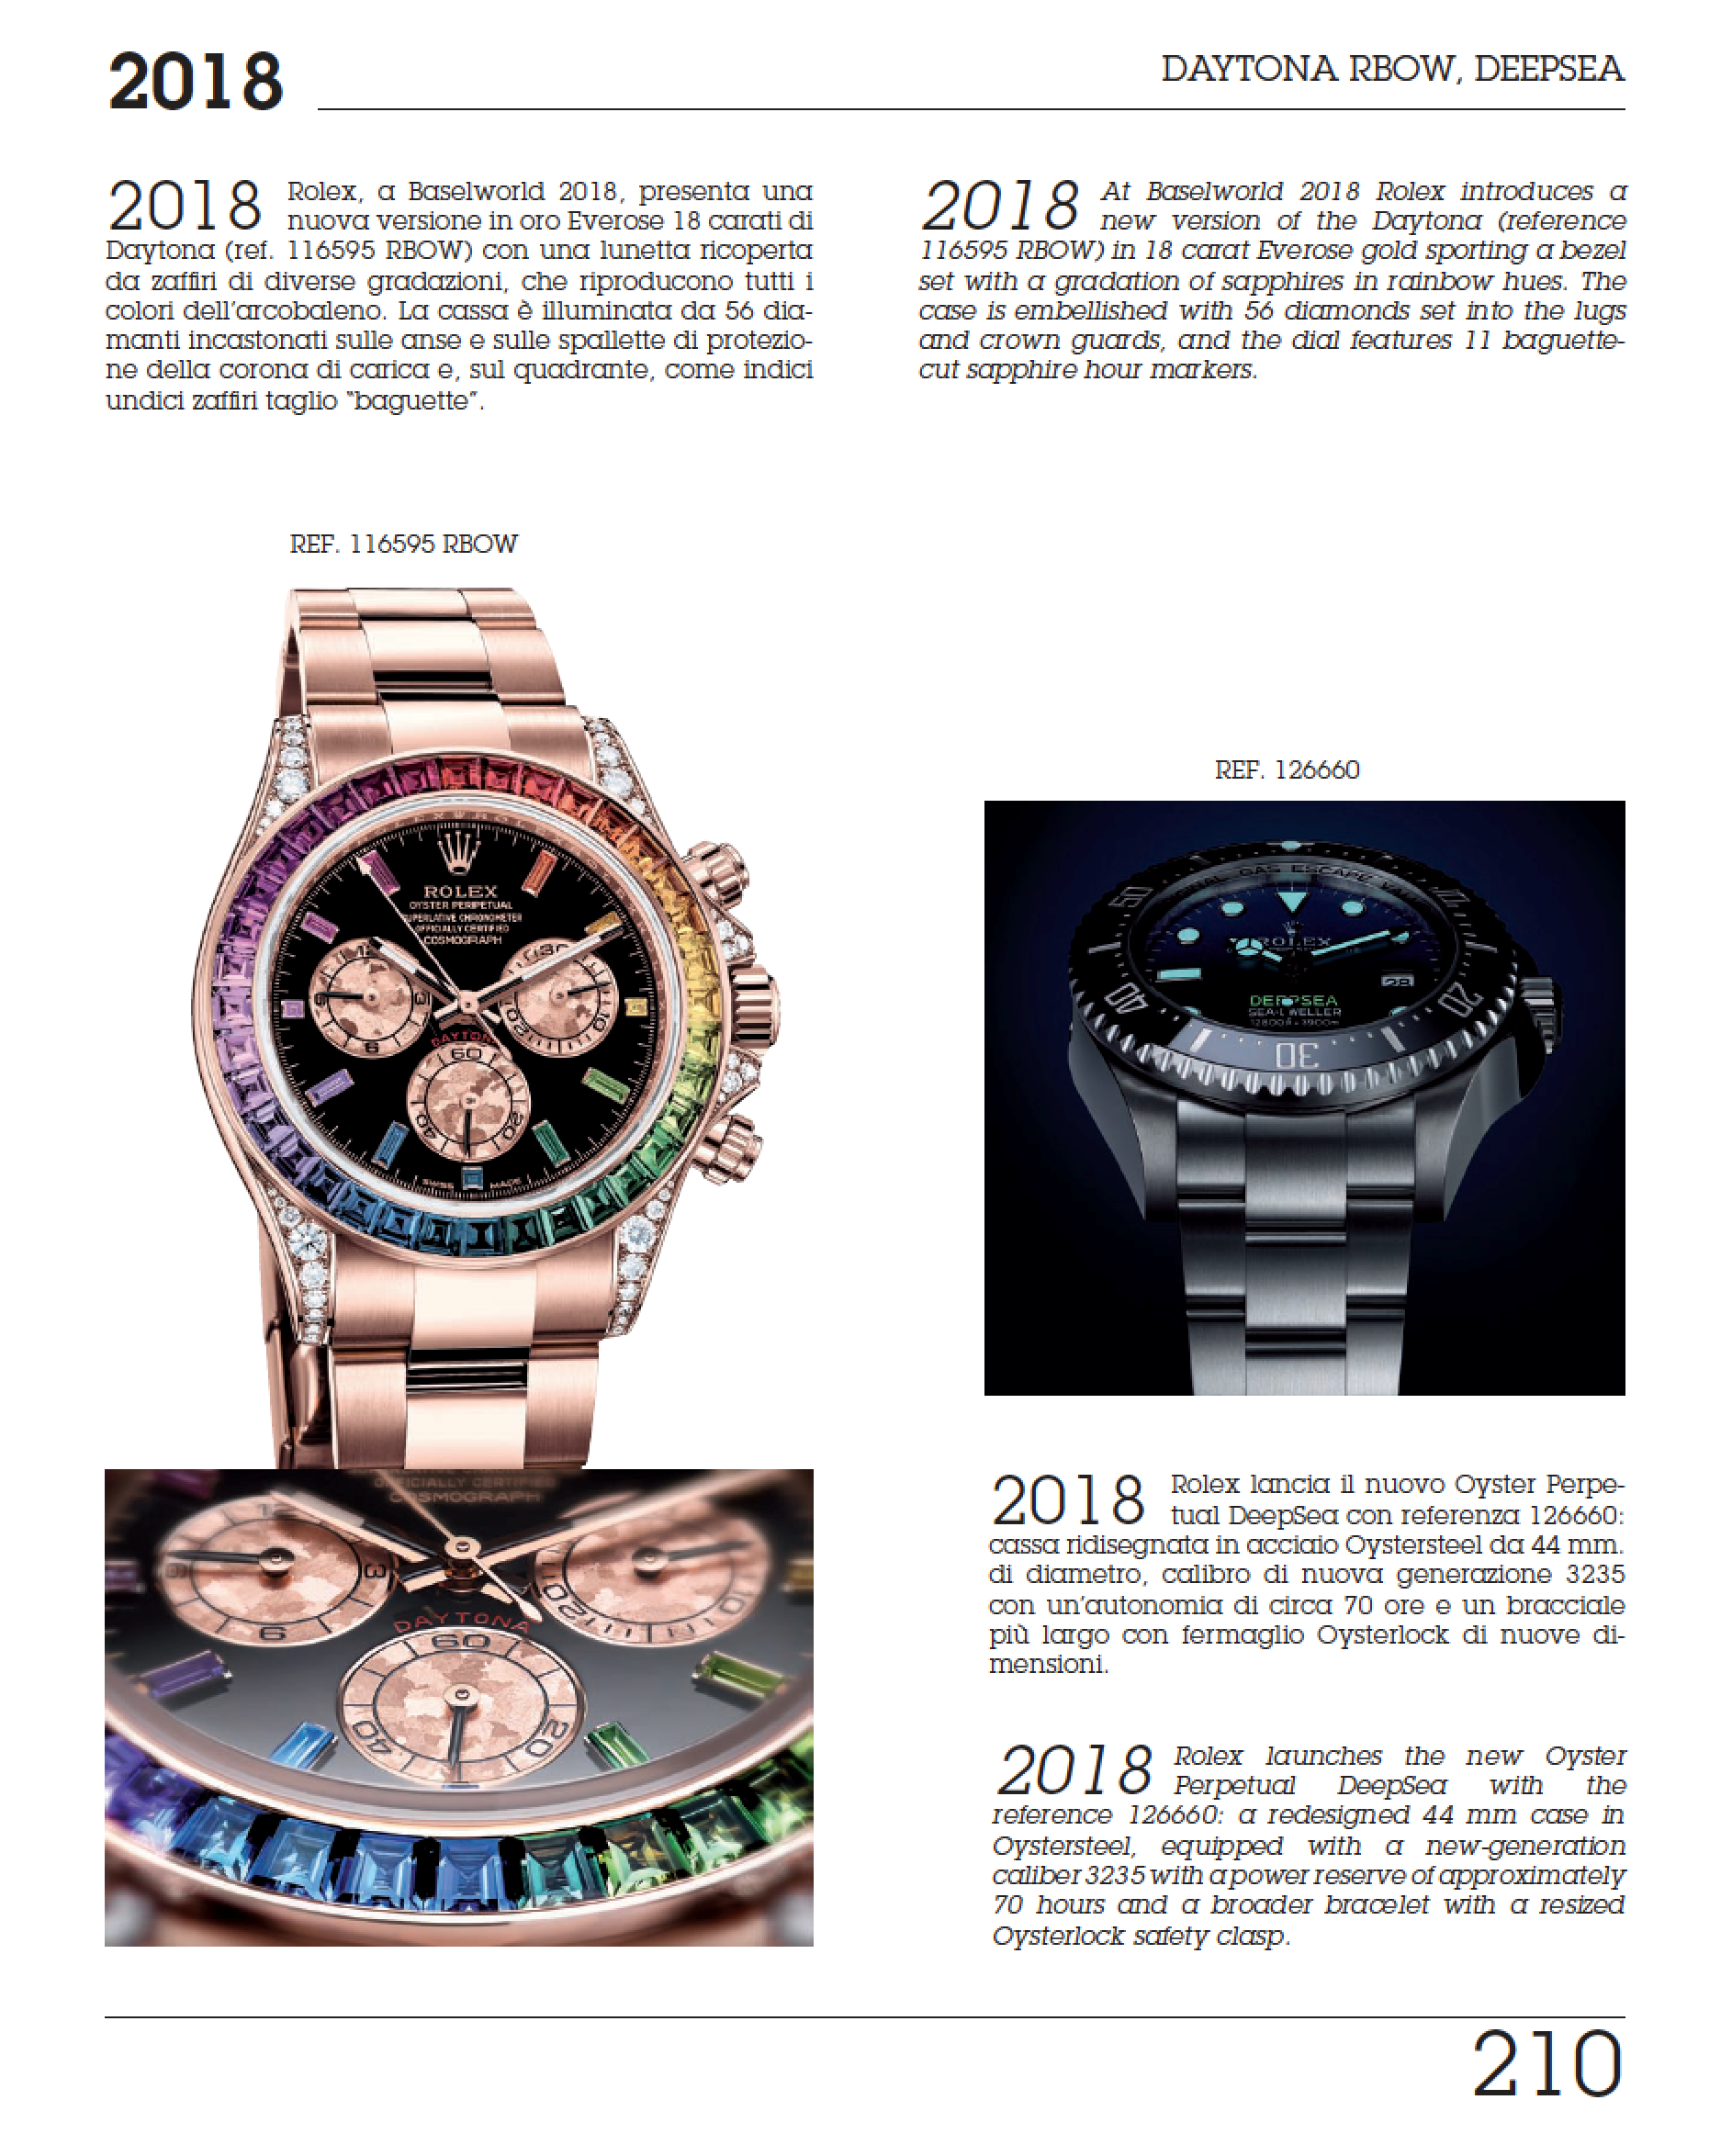 ROLEX ENCYCLOPEDIA